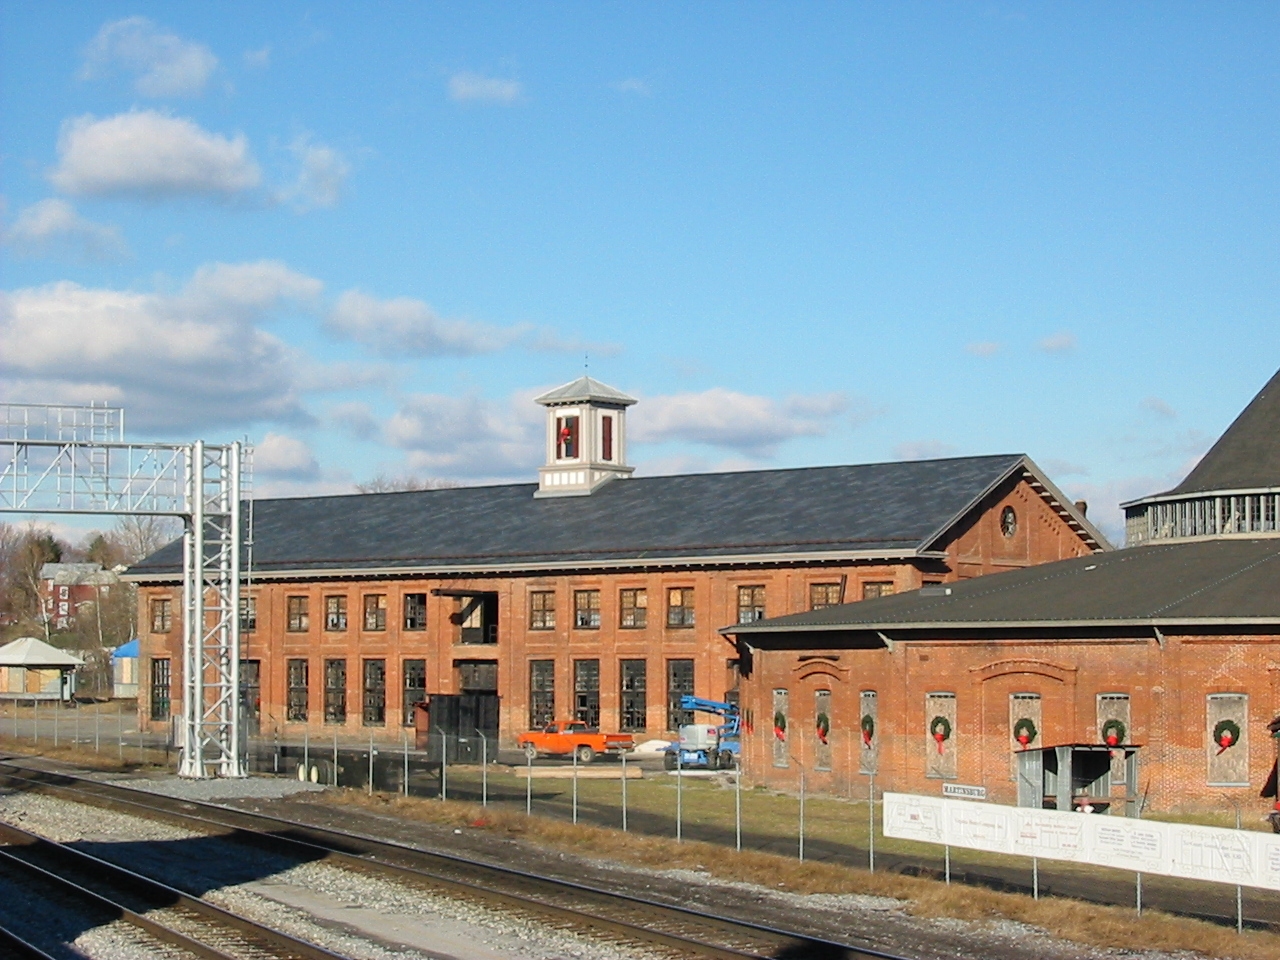 The Martinsburg B&O Roundhouse-Bridge and Machine Shop building